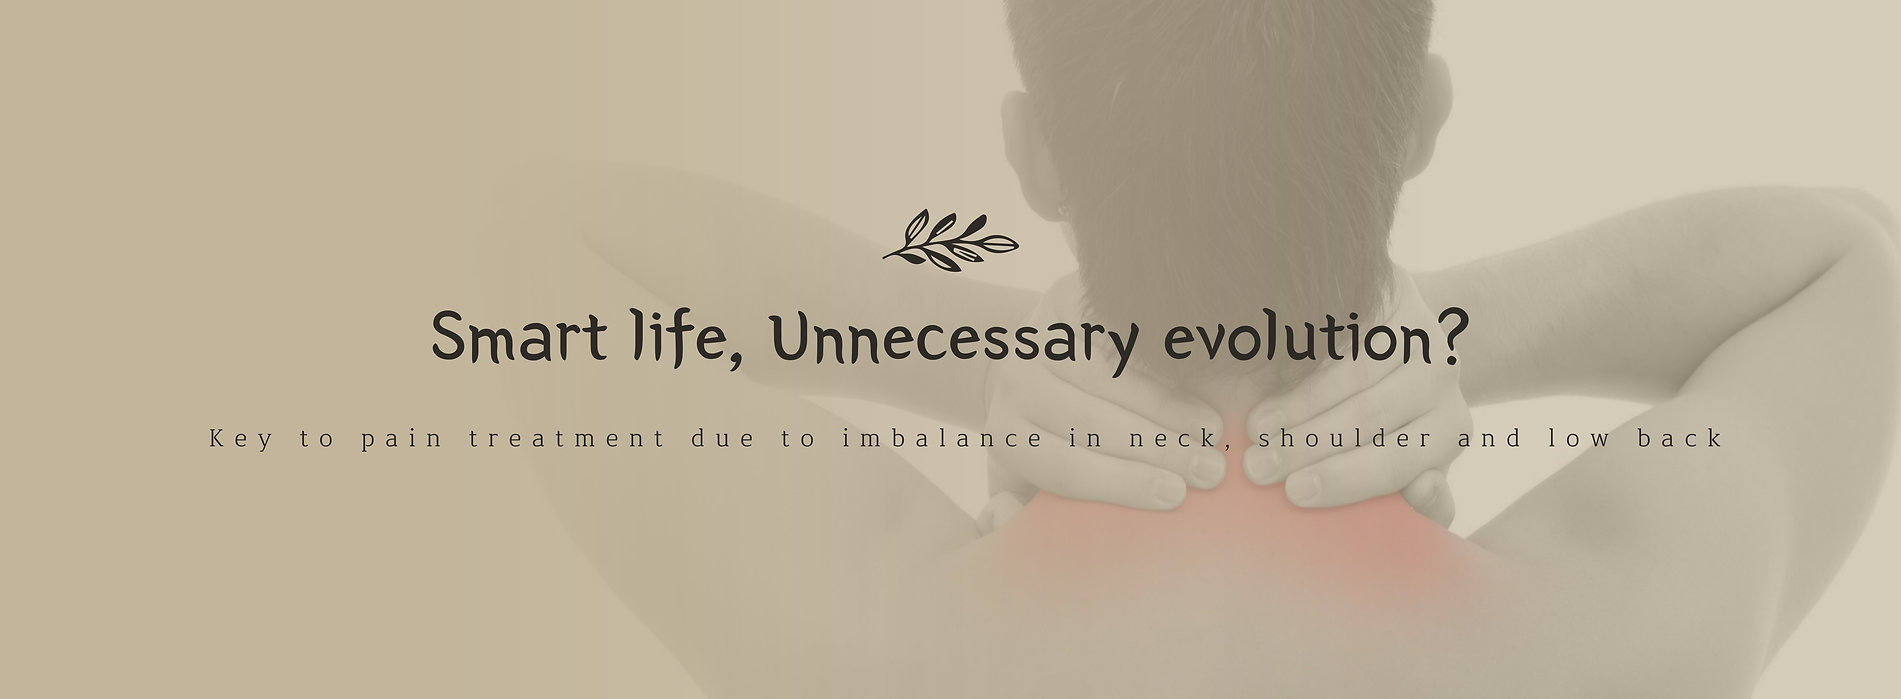 Smart life, Unnecessary evolution? Key to pain treatment due to imbalance in neck, shoulder and back